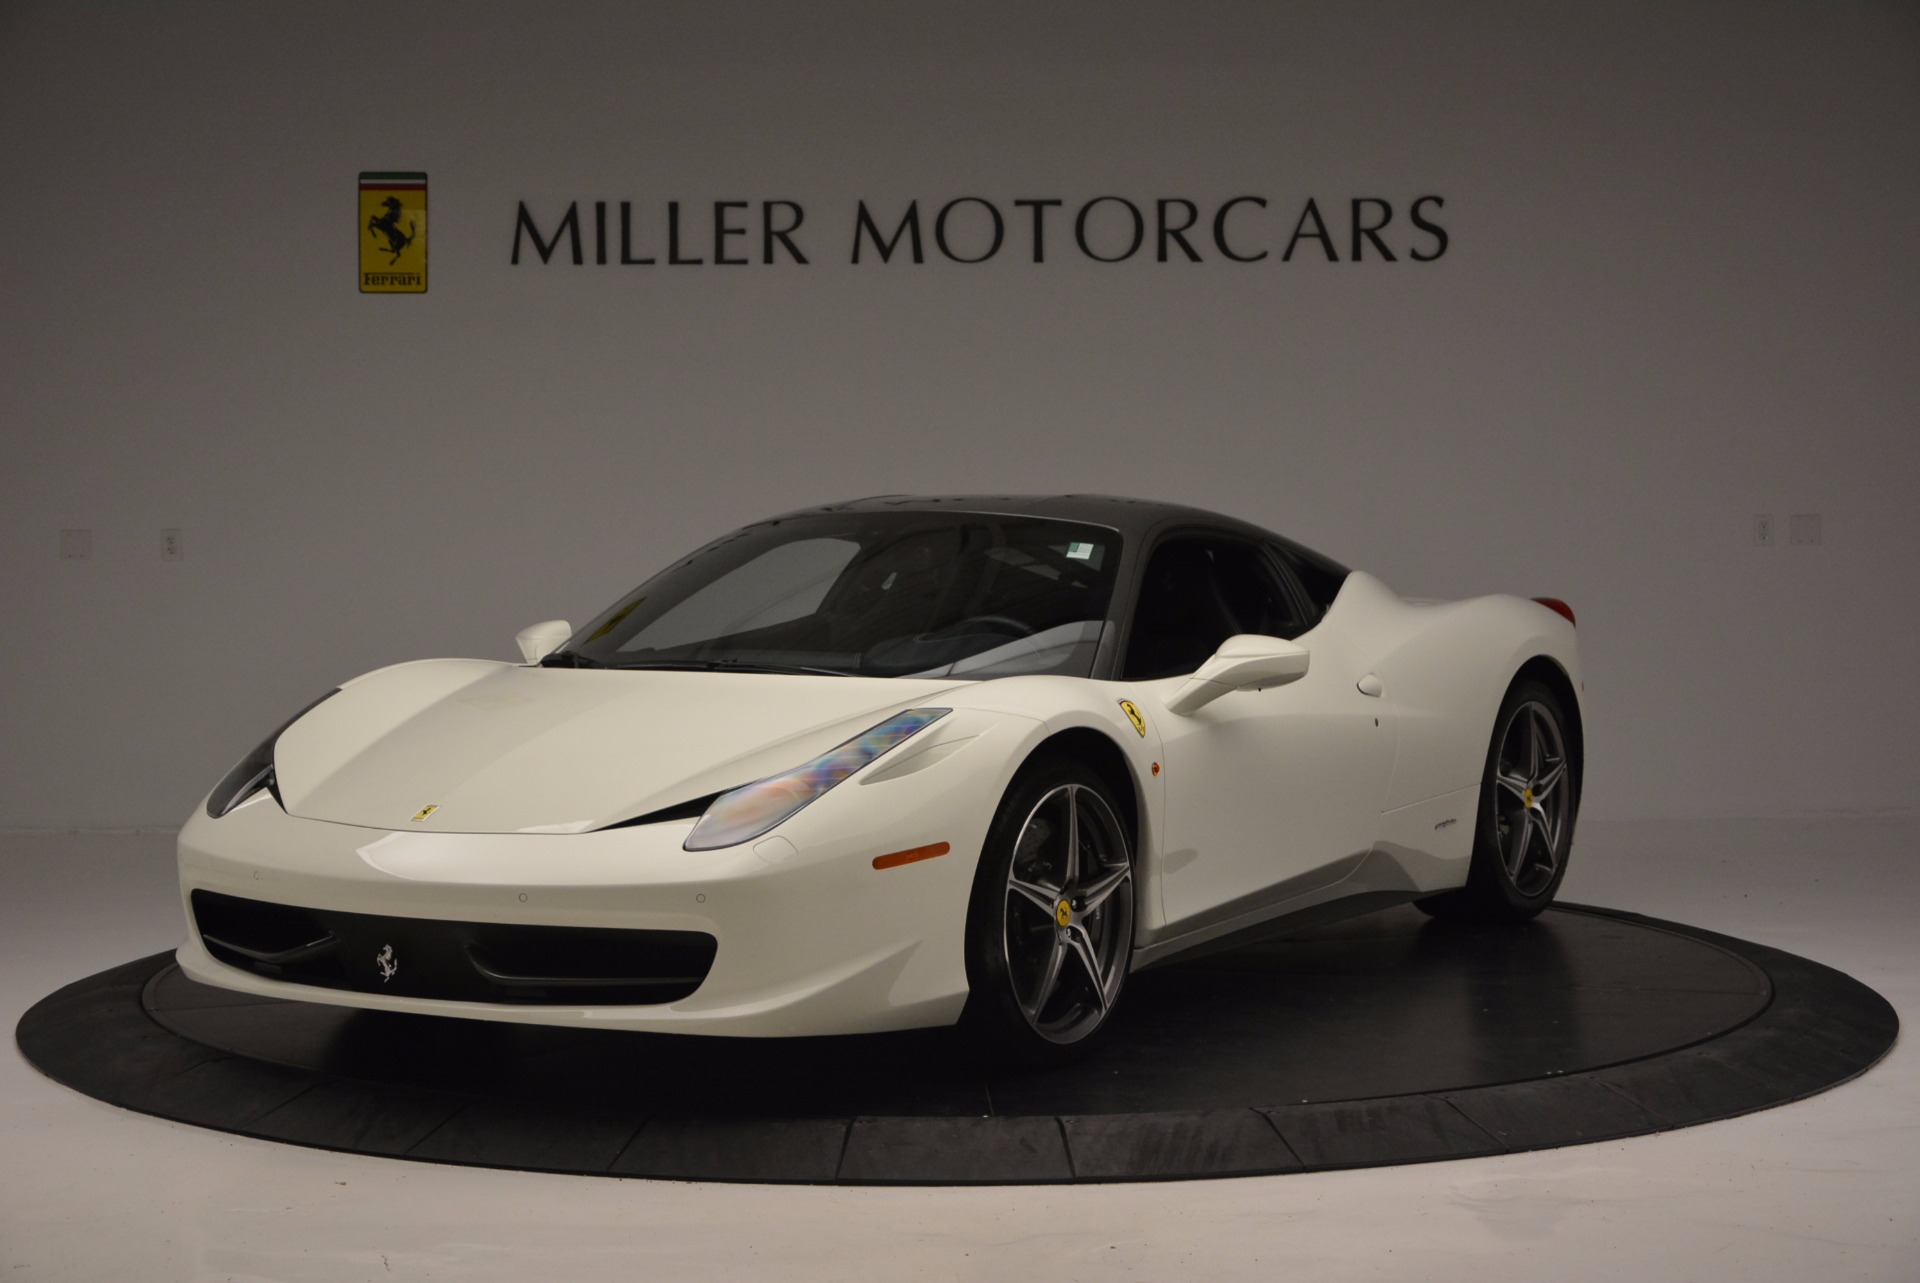 Used 2012 Ferrari 458 Italia for sale Sold at Alfa Romeo of Westport in Westport CT 06880 1